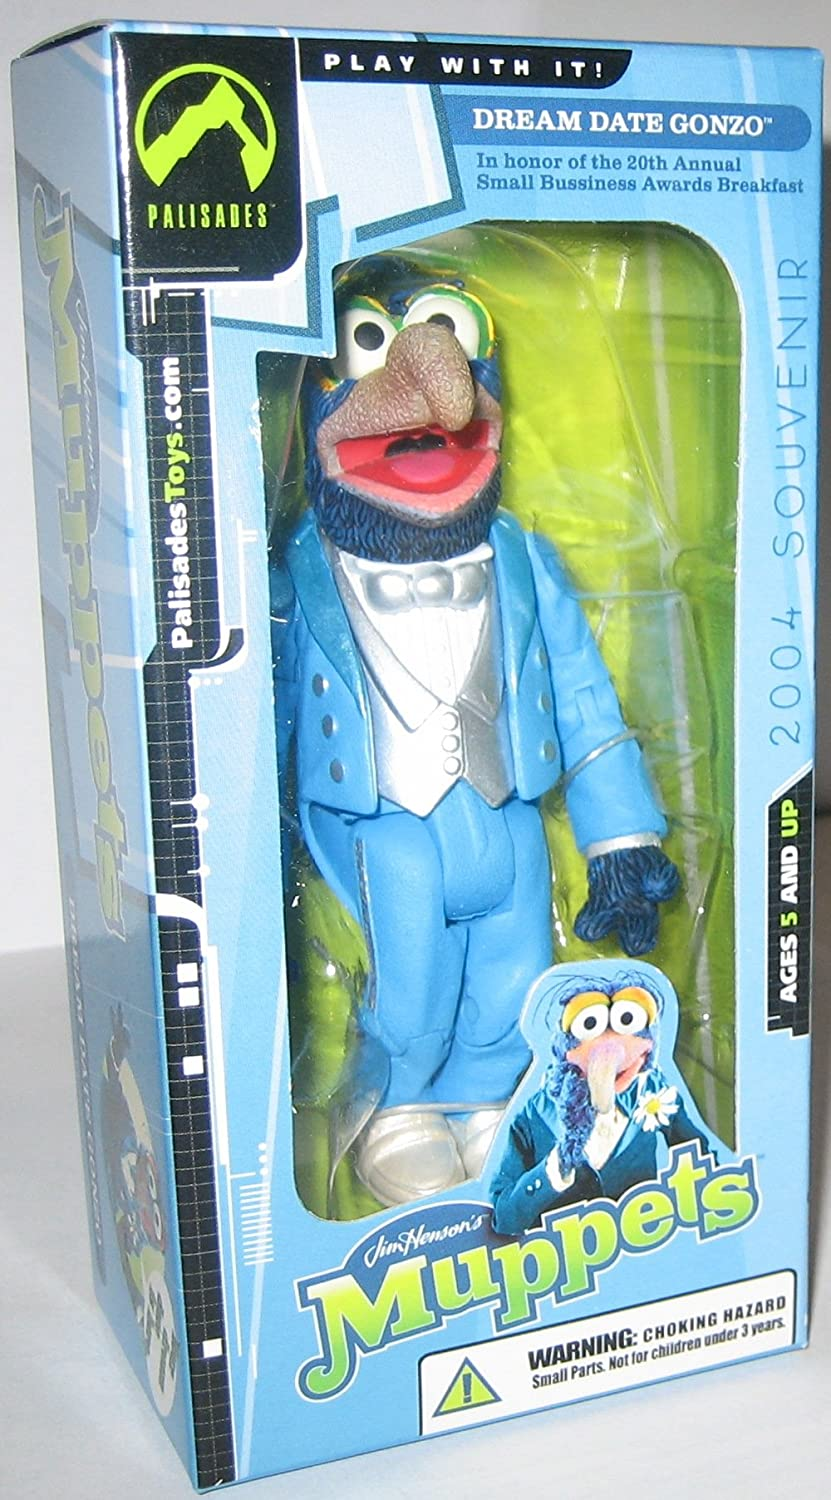 Palisades Toys The Muppet Show Dream Date Gonzo Palisades